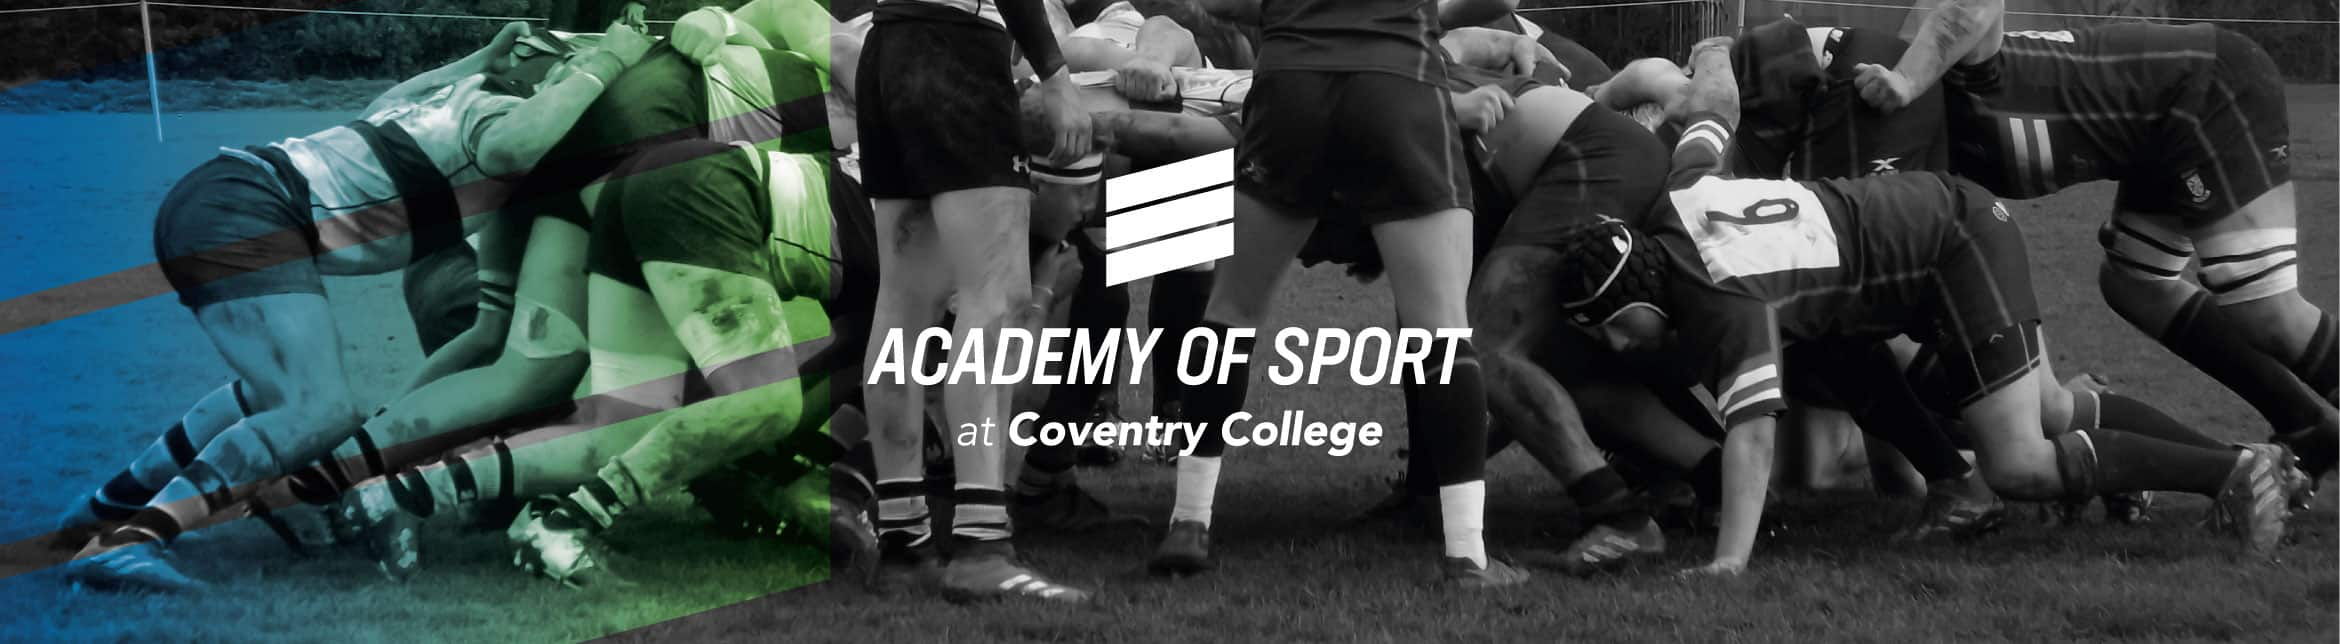 Rugby at Coventry College